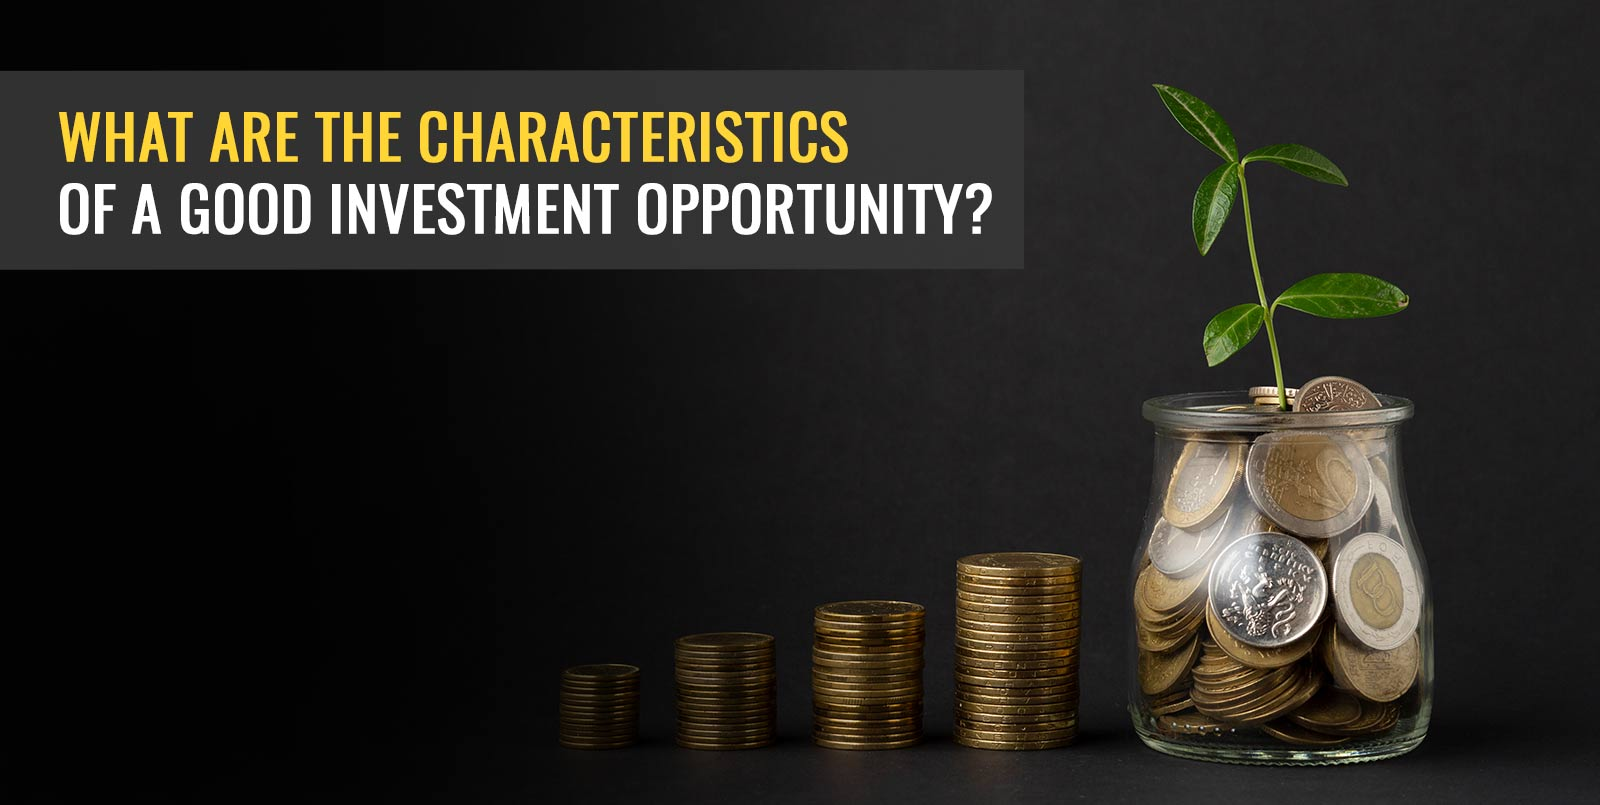 What Are The Characteristics Of A Good Investment Opportunity?